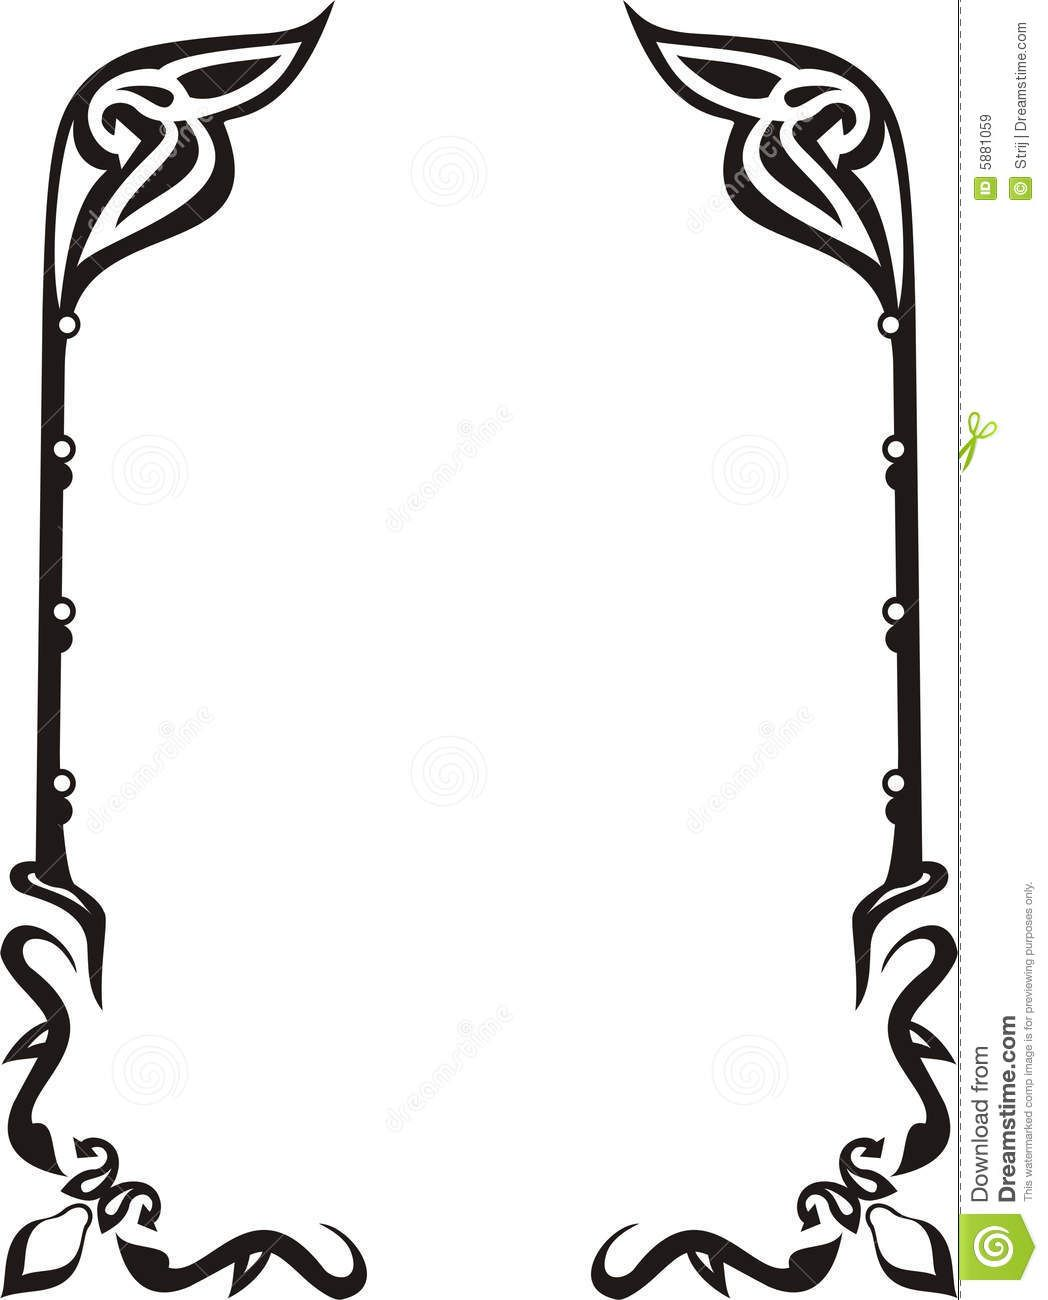 Ornament frame 5881059g 10481300 pinterest explore these ideas and more thecheapjerseys Image collections